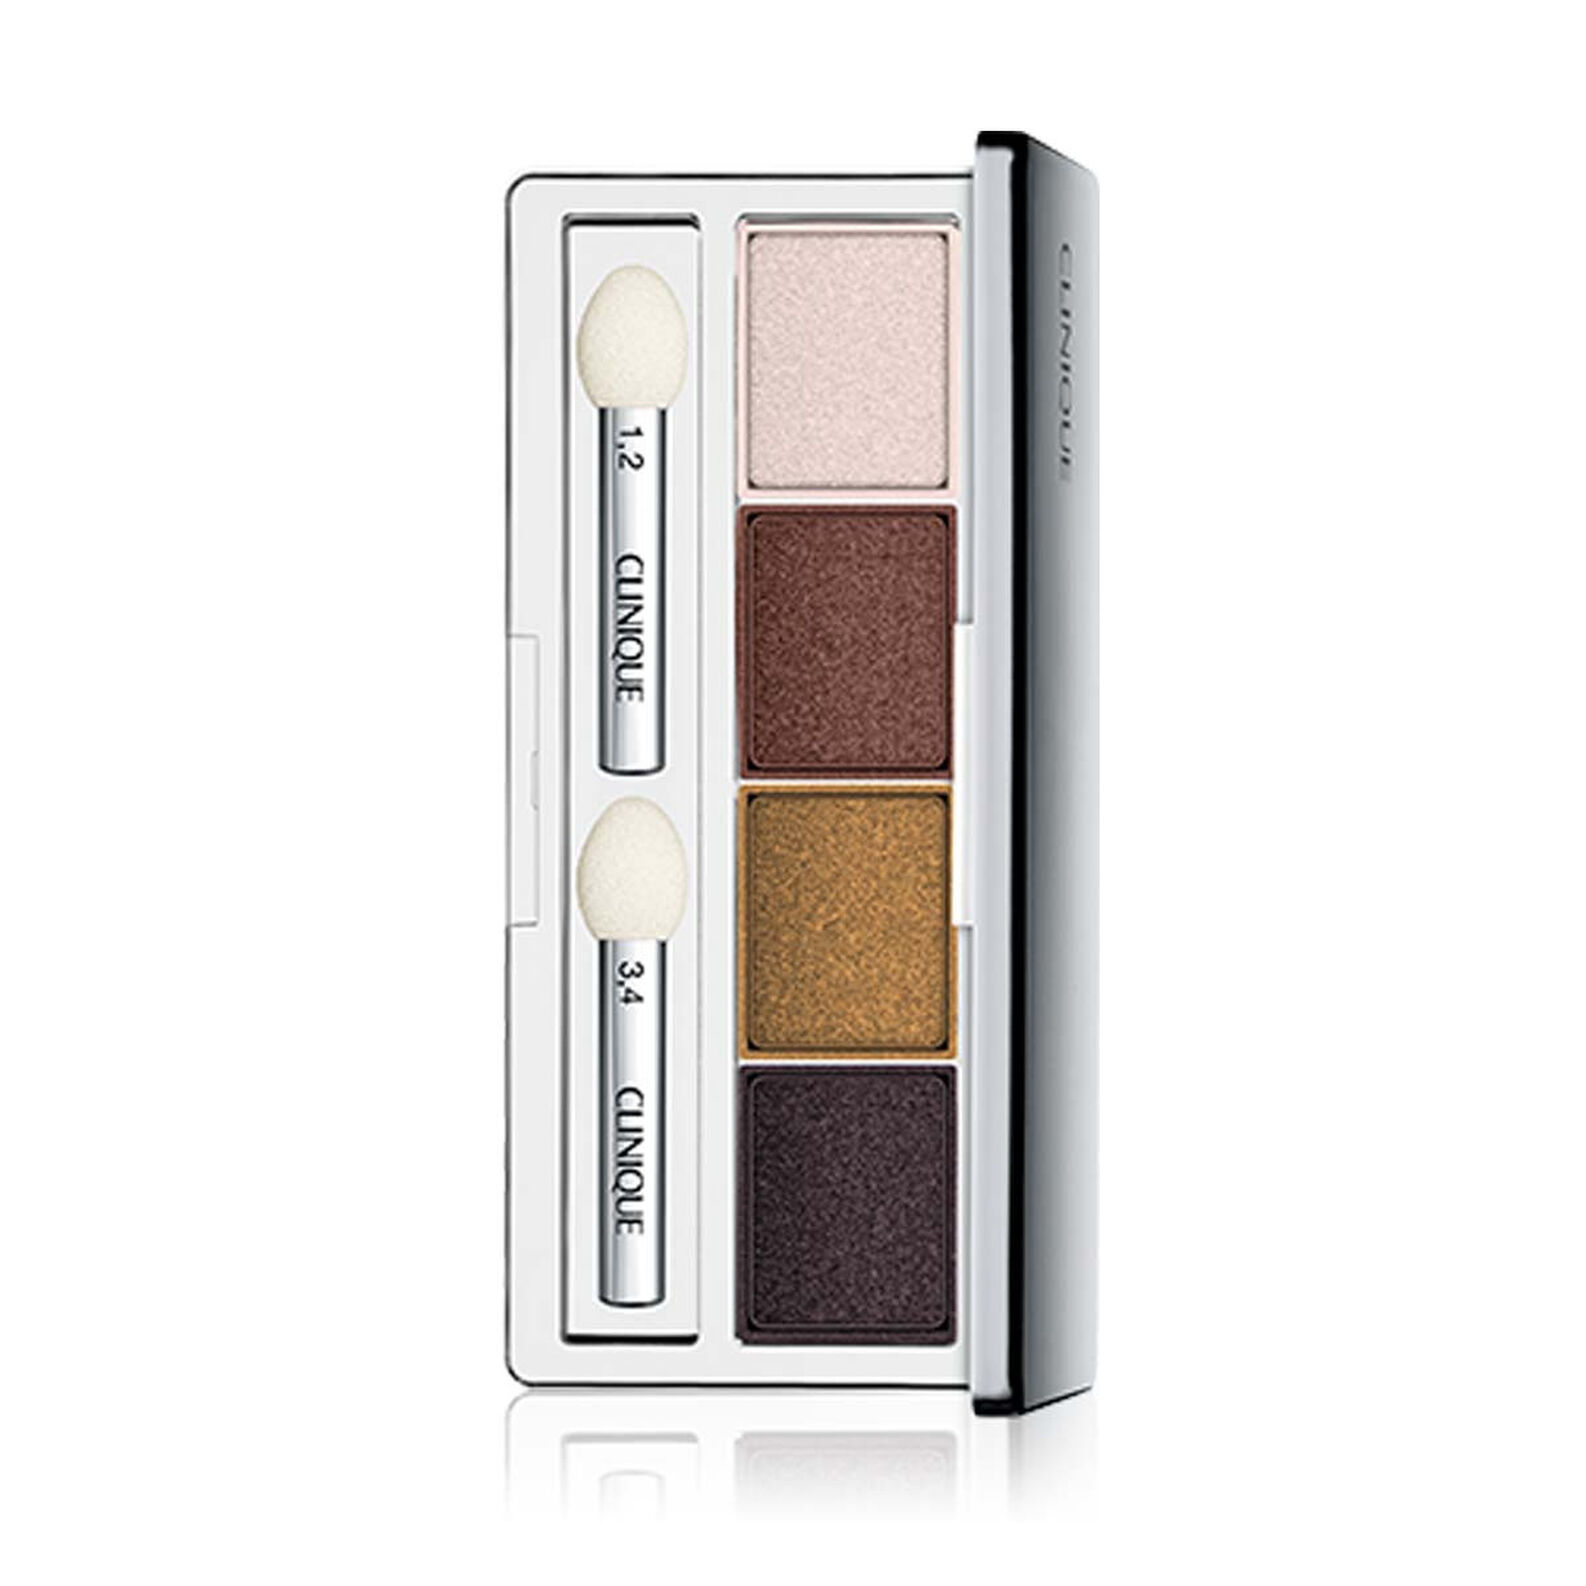 CLINIQUE ALL ABOUT SHADOW QUAD - 03 MORNING JAVA 4,8 G